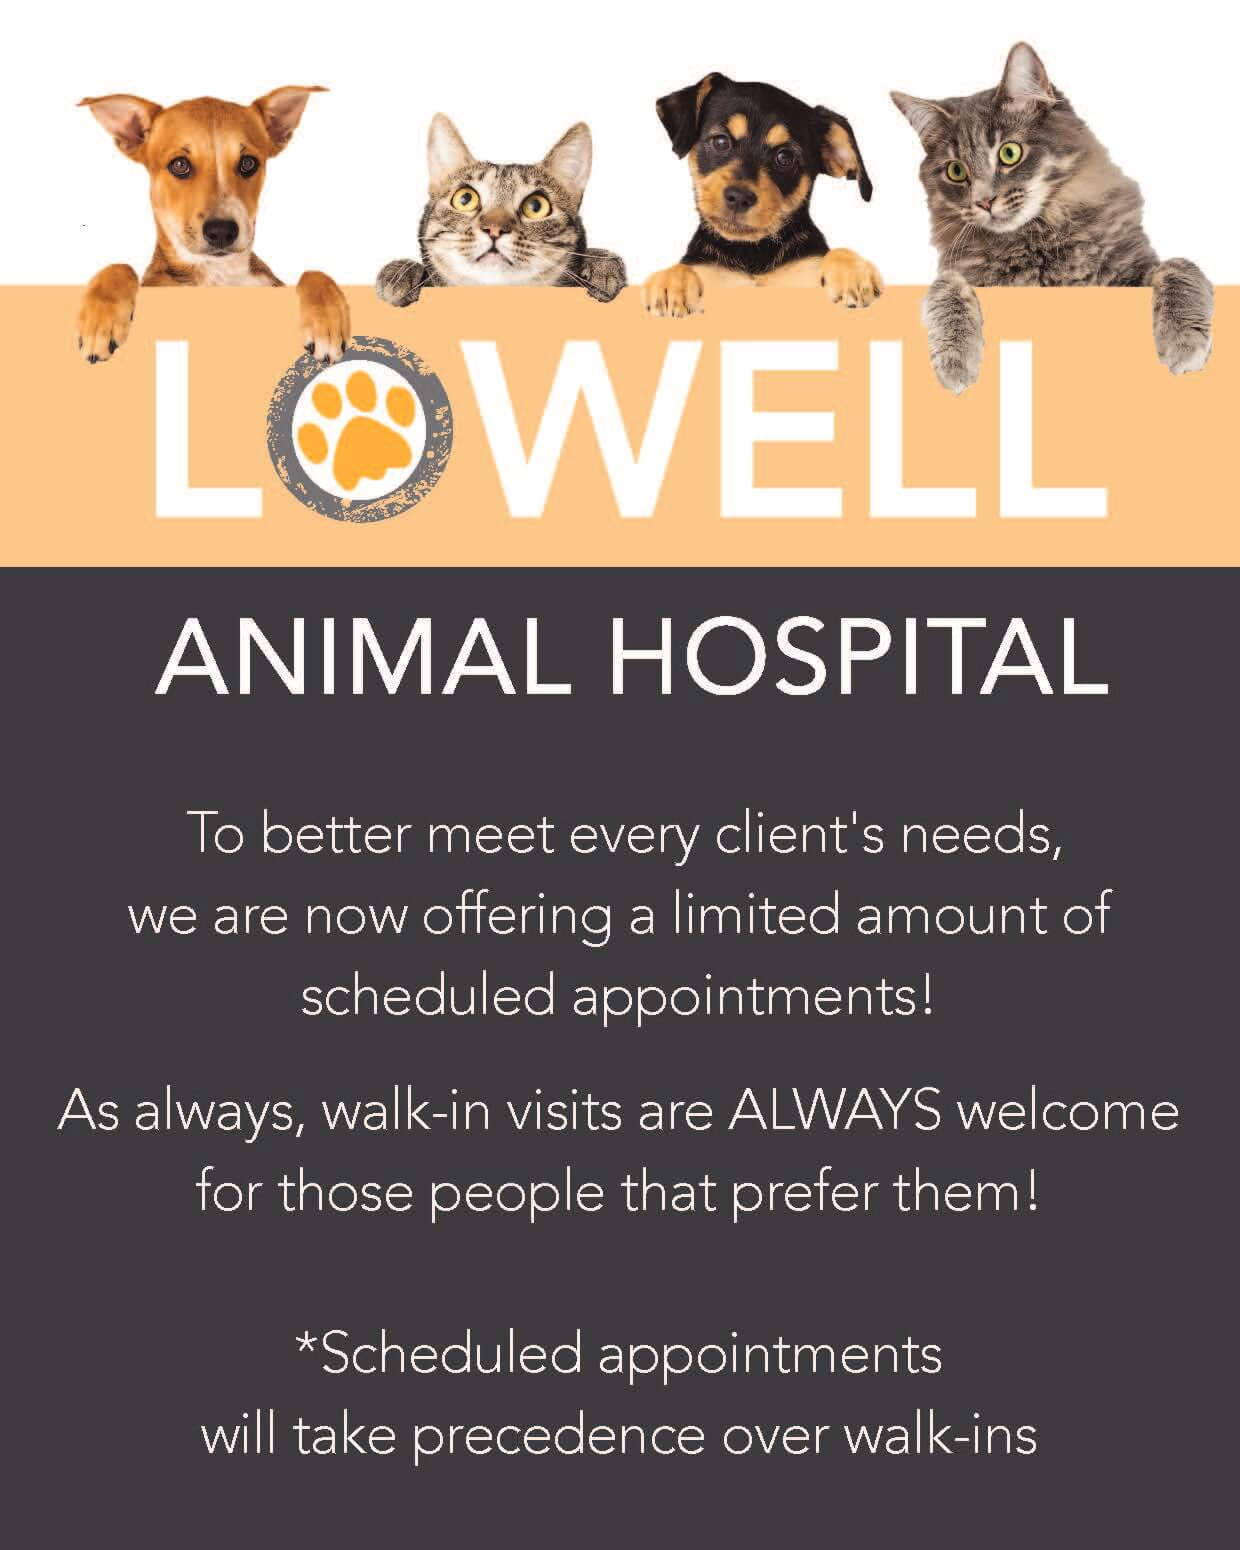 Lowell Animal Hospital Now Offering Limited Appointments